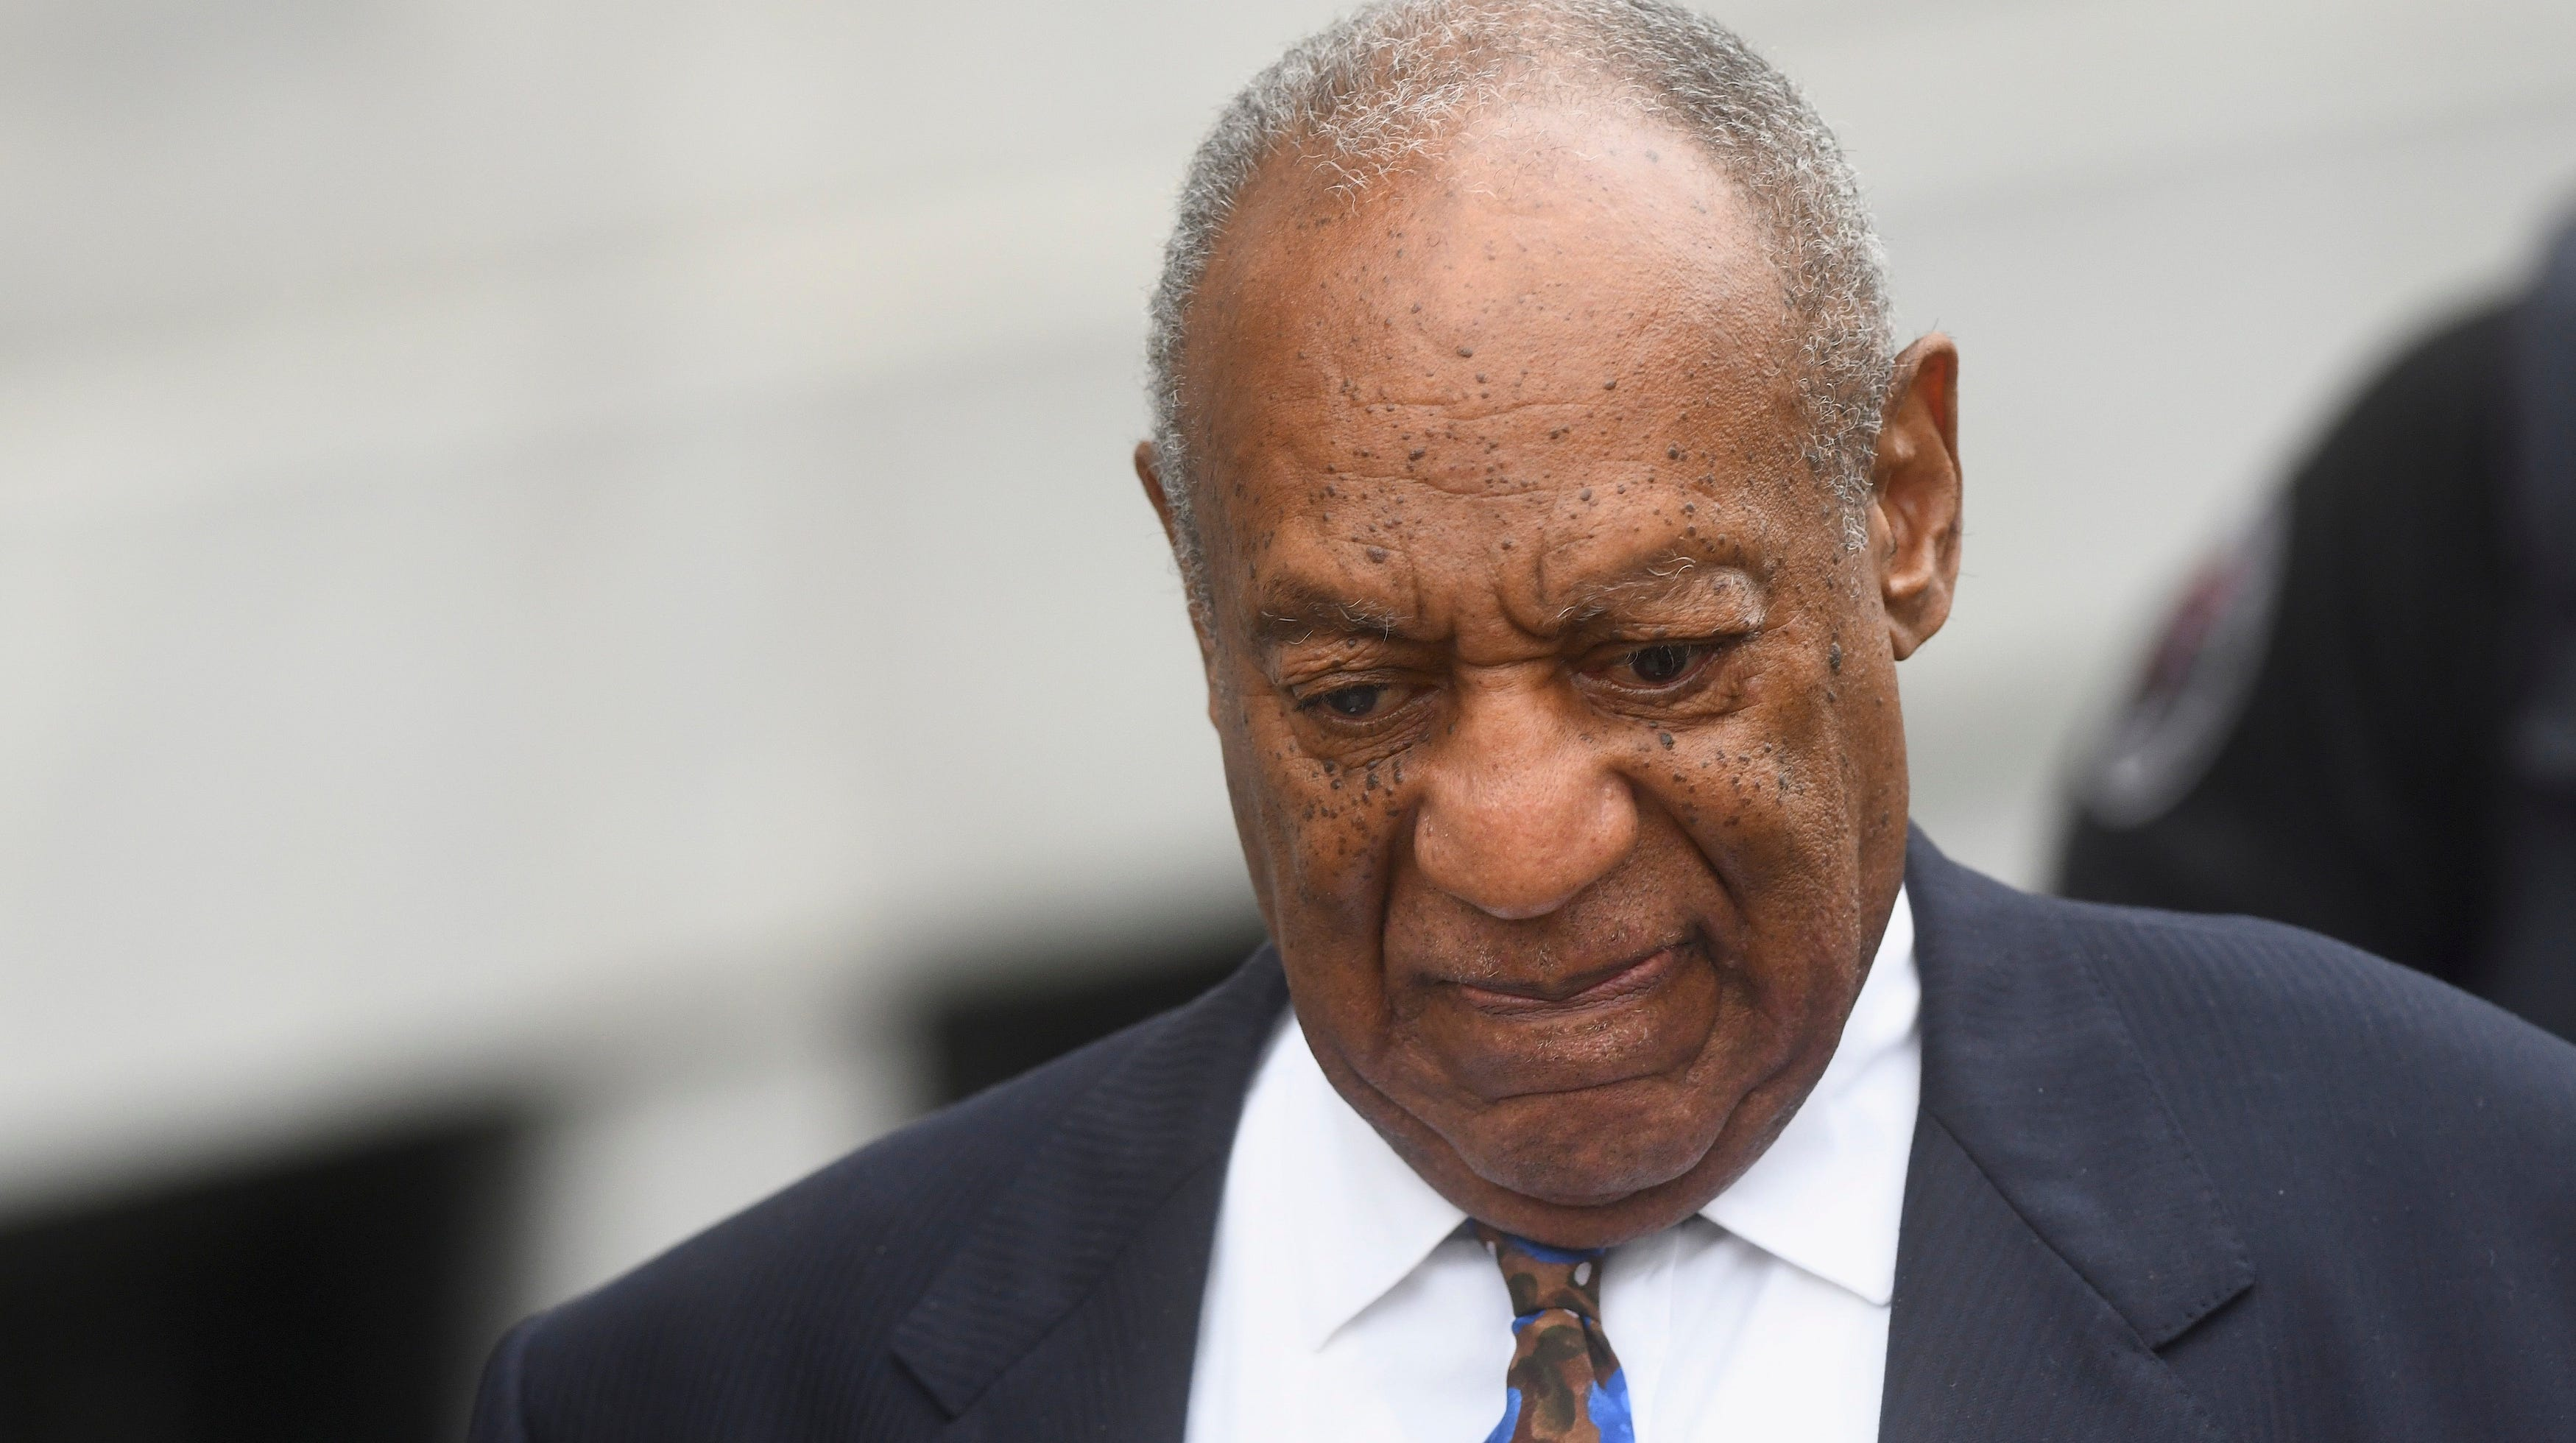 Bill Cosby Monday leaves the first day of a sentencing hearing related to his sexual assault conviction in April. The hearing is scheduled to resume Tuesday.